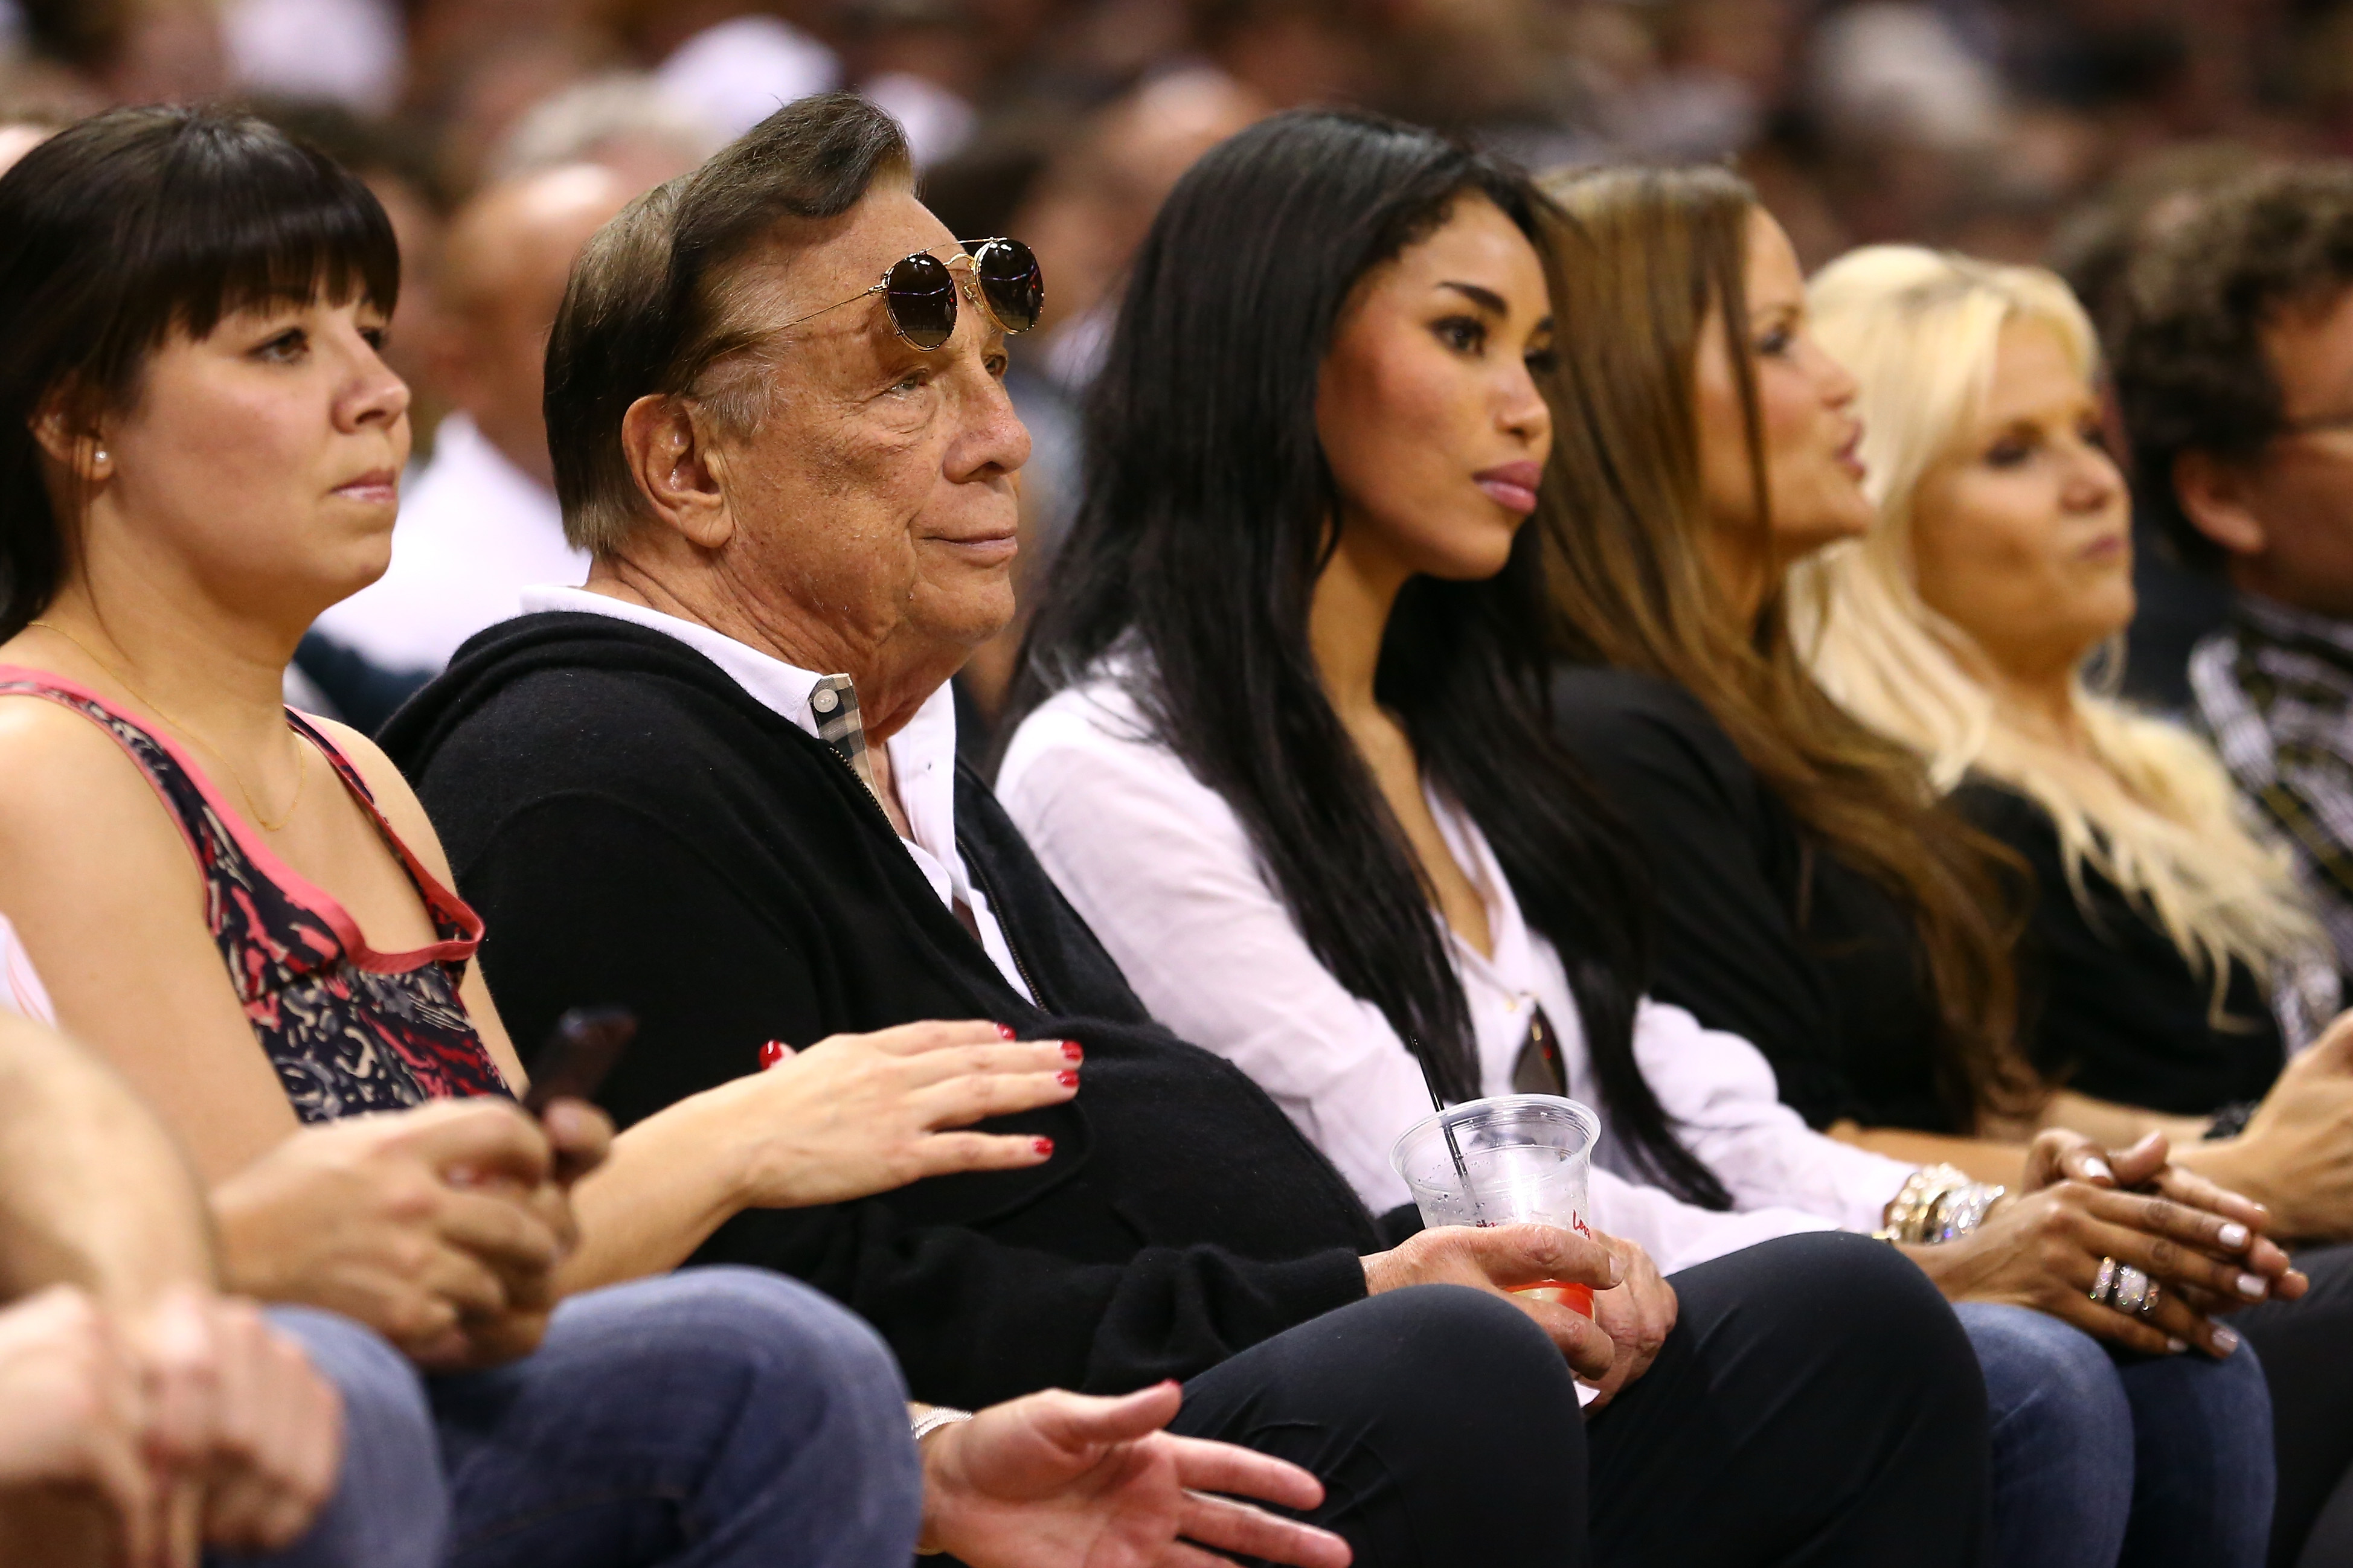 Team owner Donald Sterling (center) of the Los Angeles Clippers and V. Stiviano (second from right) watch the San Antonio Spurs play against the Memphis Grizzlies in San Antonio on May 19, 2013.